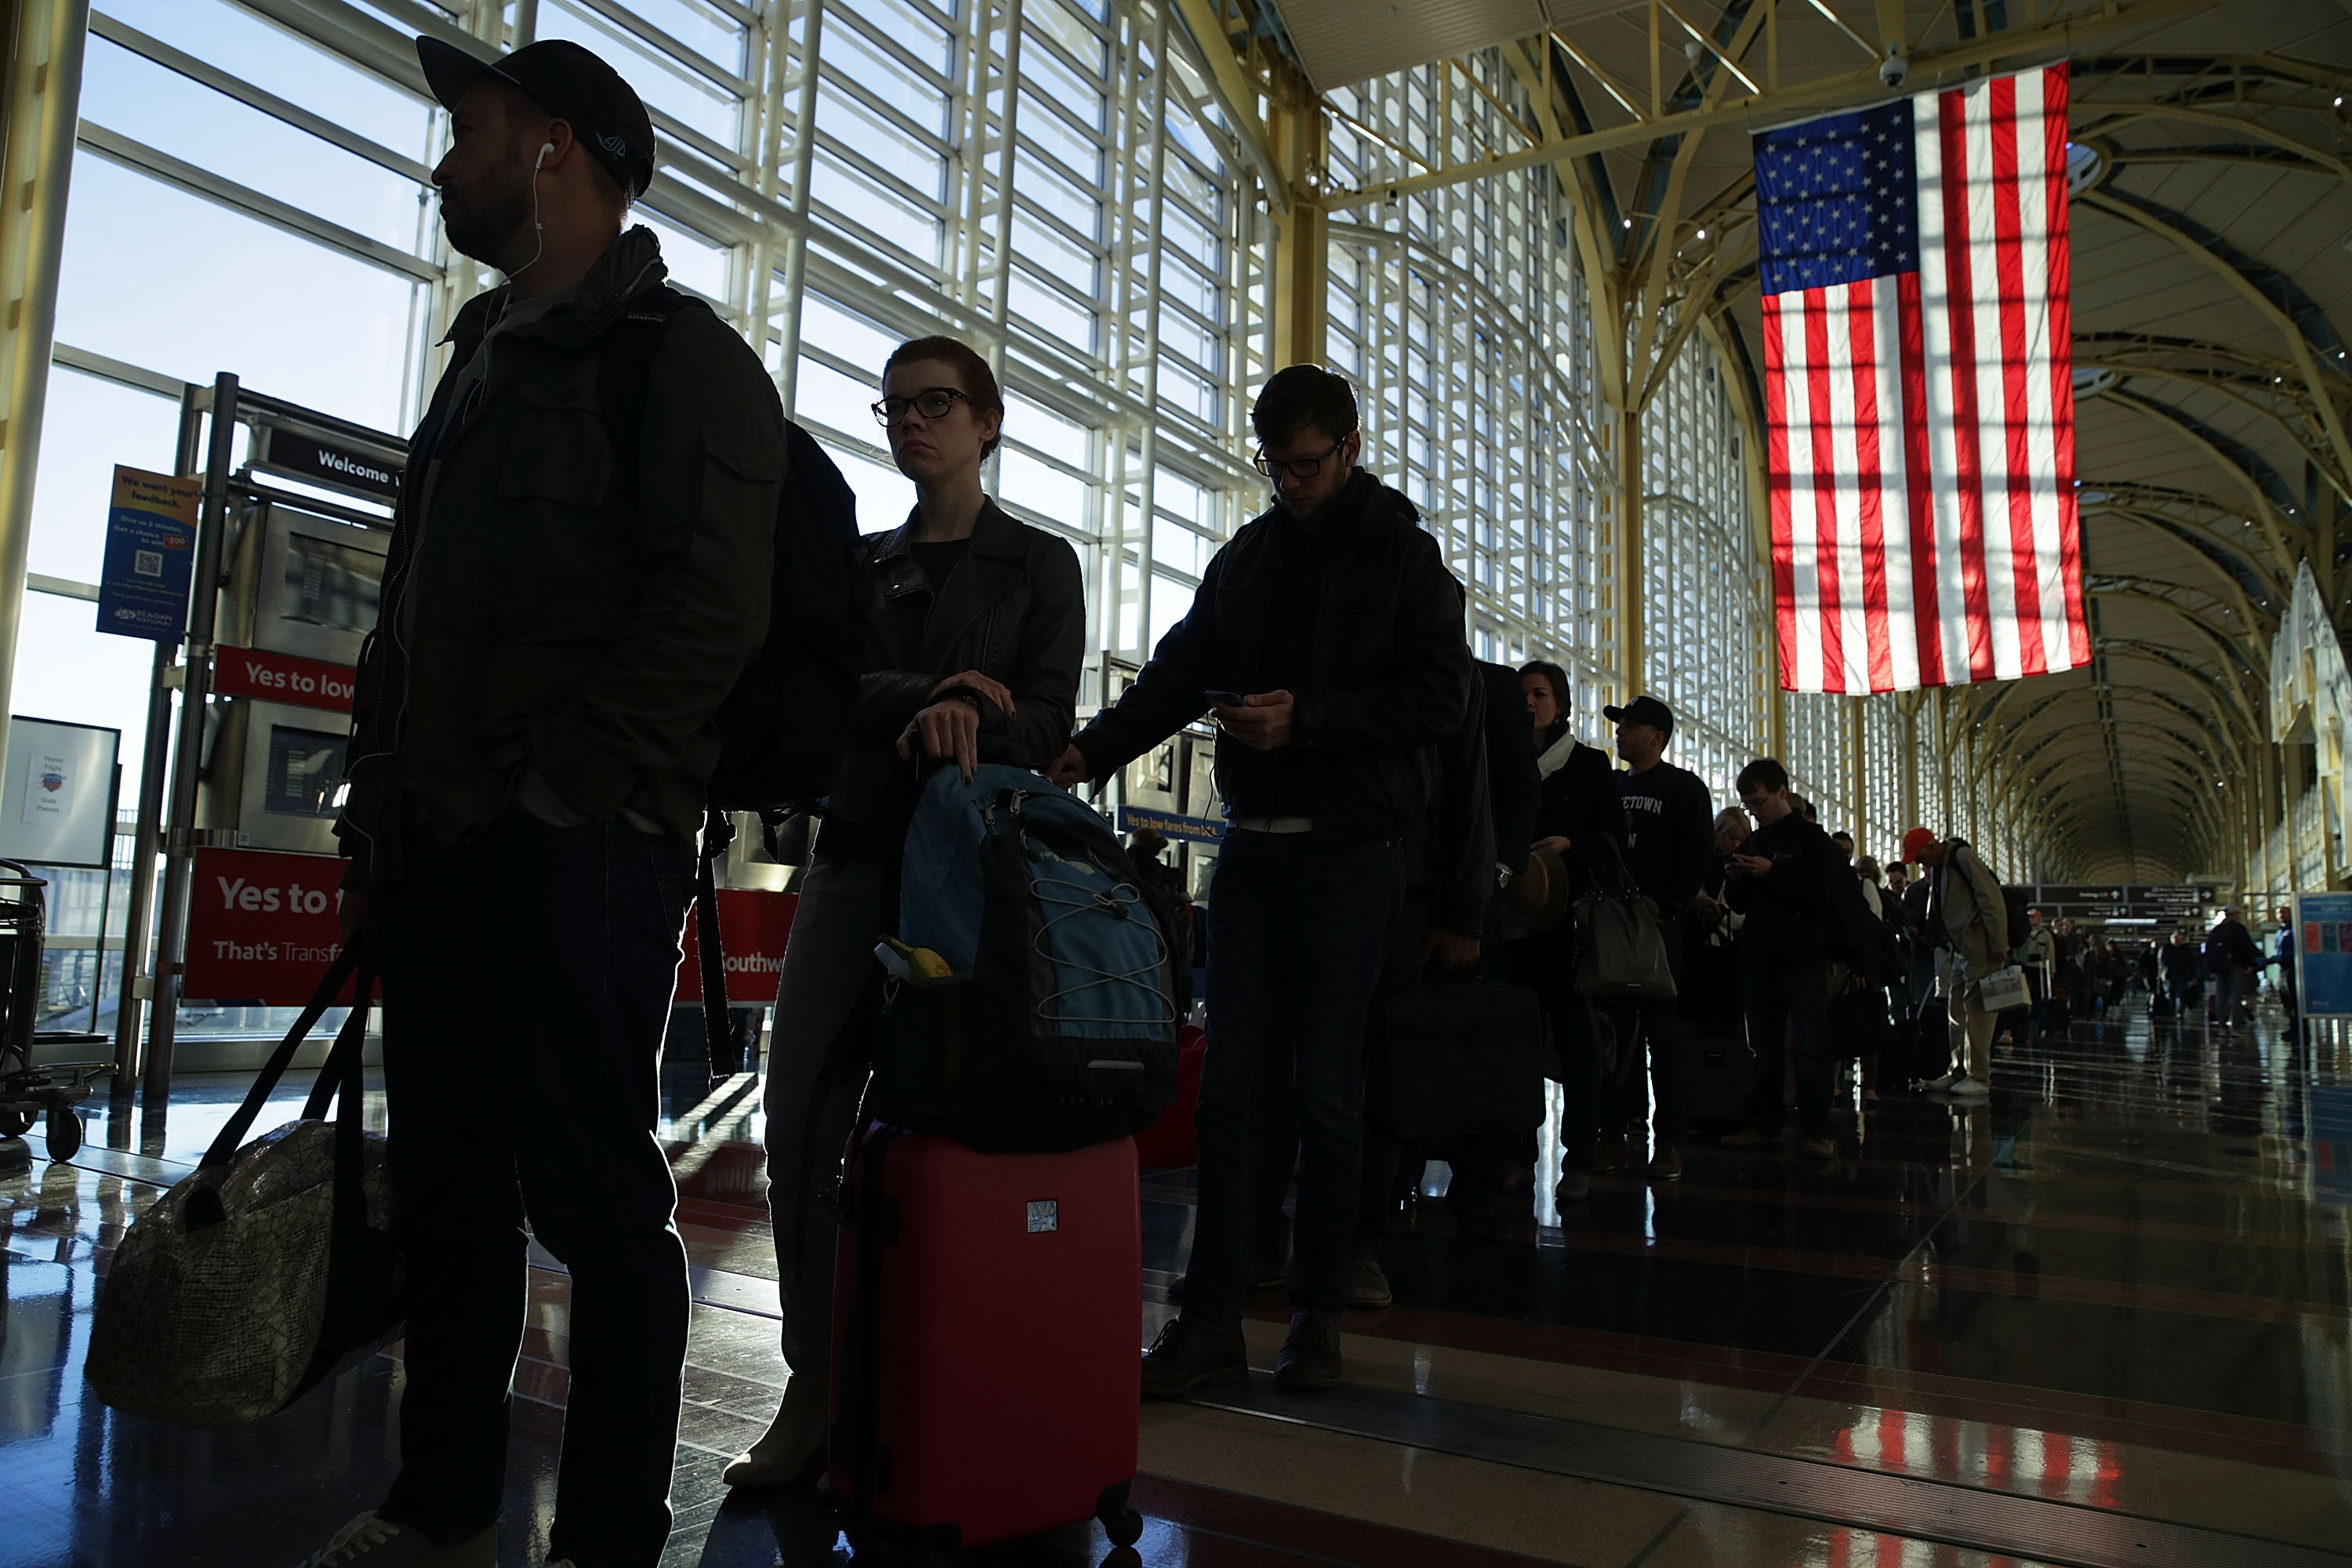 Travelers wait in-line for entering security check at Ronald Reagan Washington National Airport November 23, 2016 in Arlington, Virginia. AAA has predicted that it will be more crowded than usual to travel this Thanksgiving with nearly 49 million Americans driving or flying to their destinations